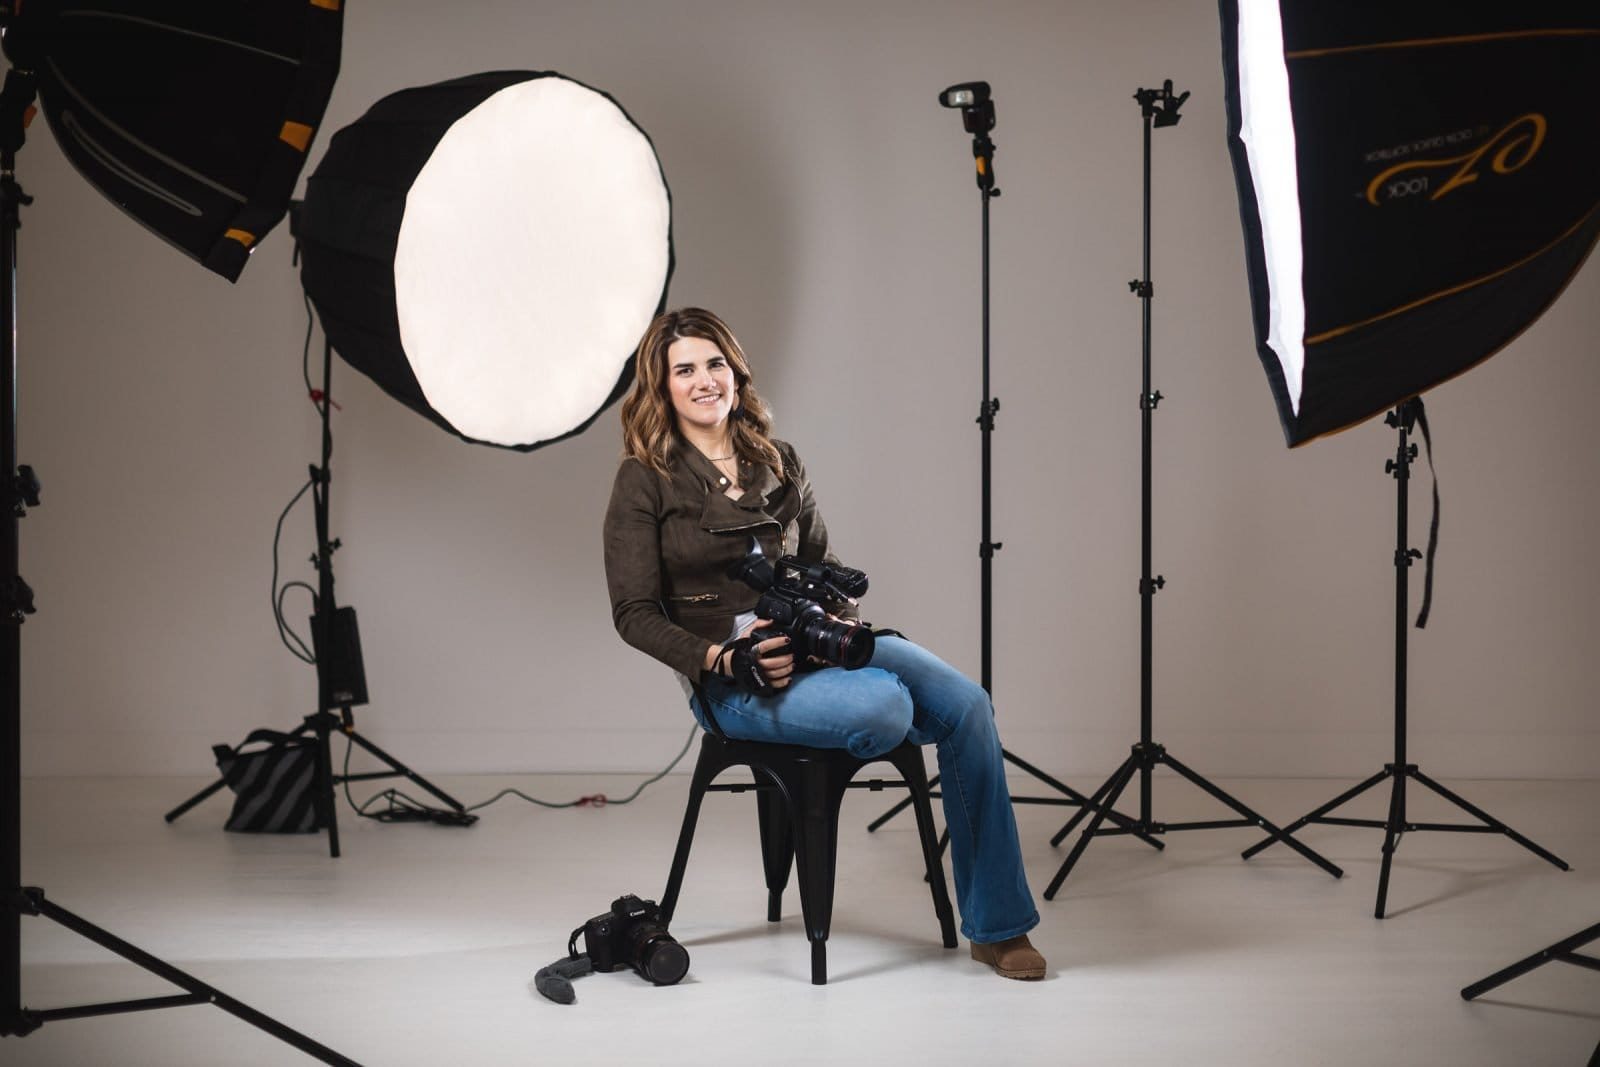 atlanta branding studio portrait of videographer surrounded by lights at white wall studio woodstock